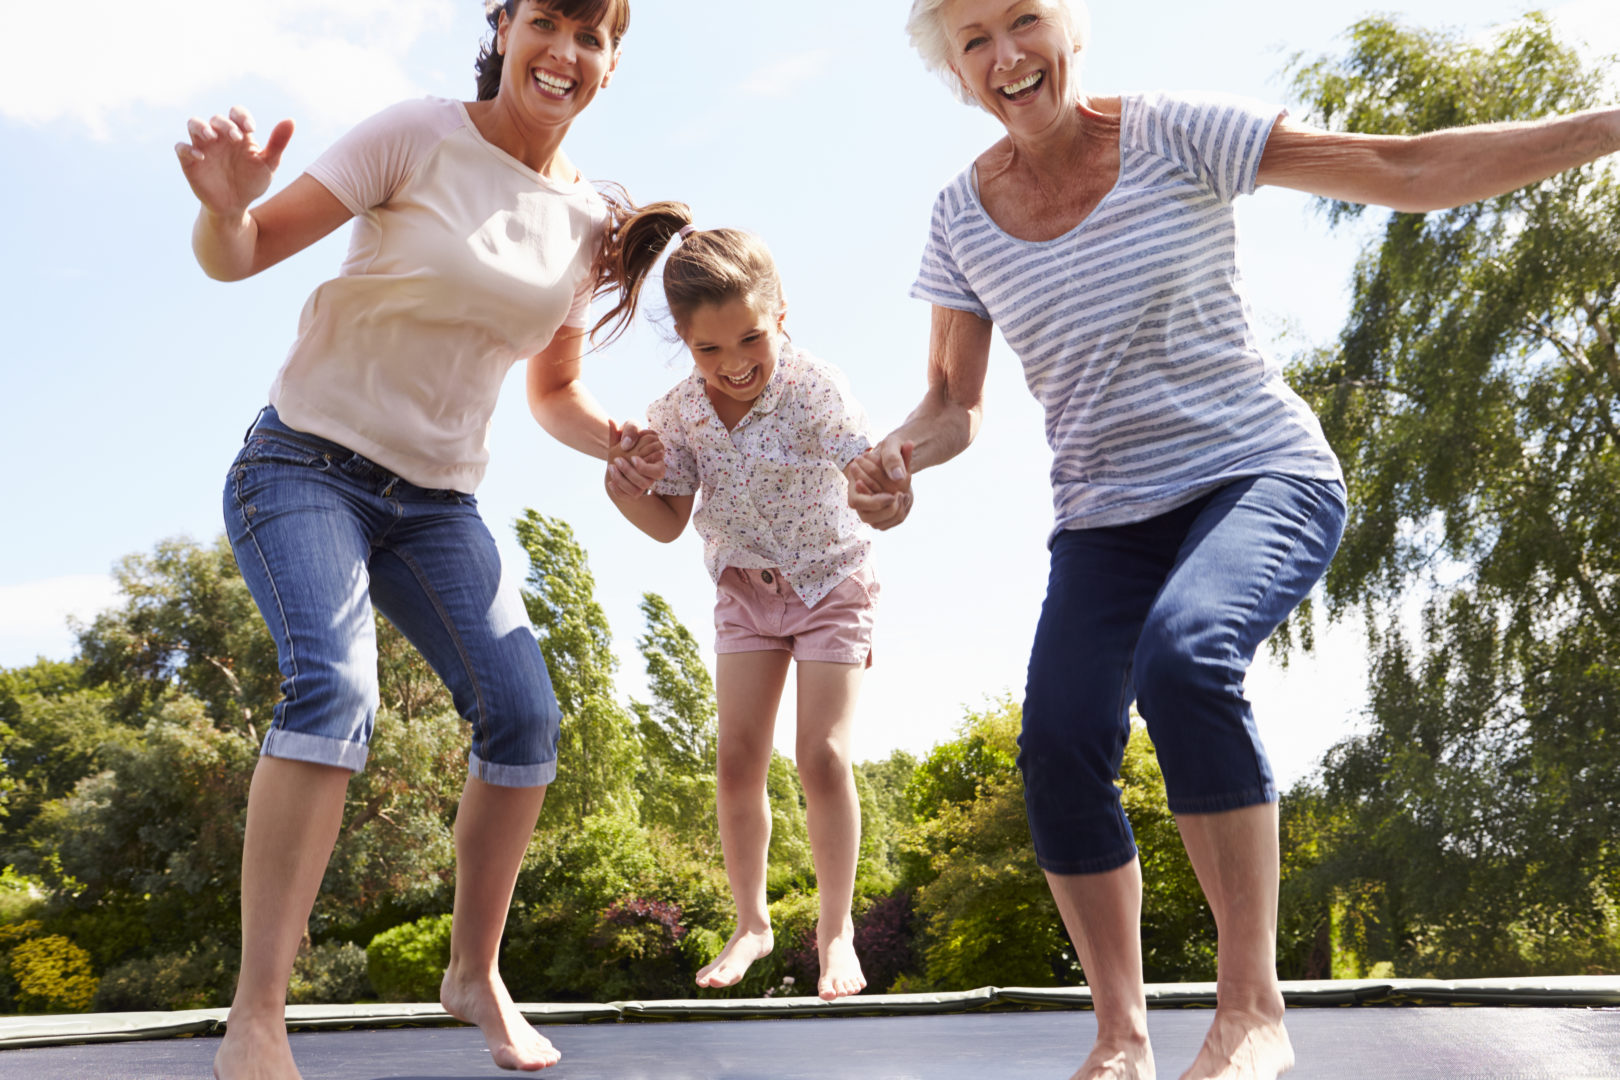 grandmother with arthritis jumping on trampoline with family